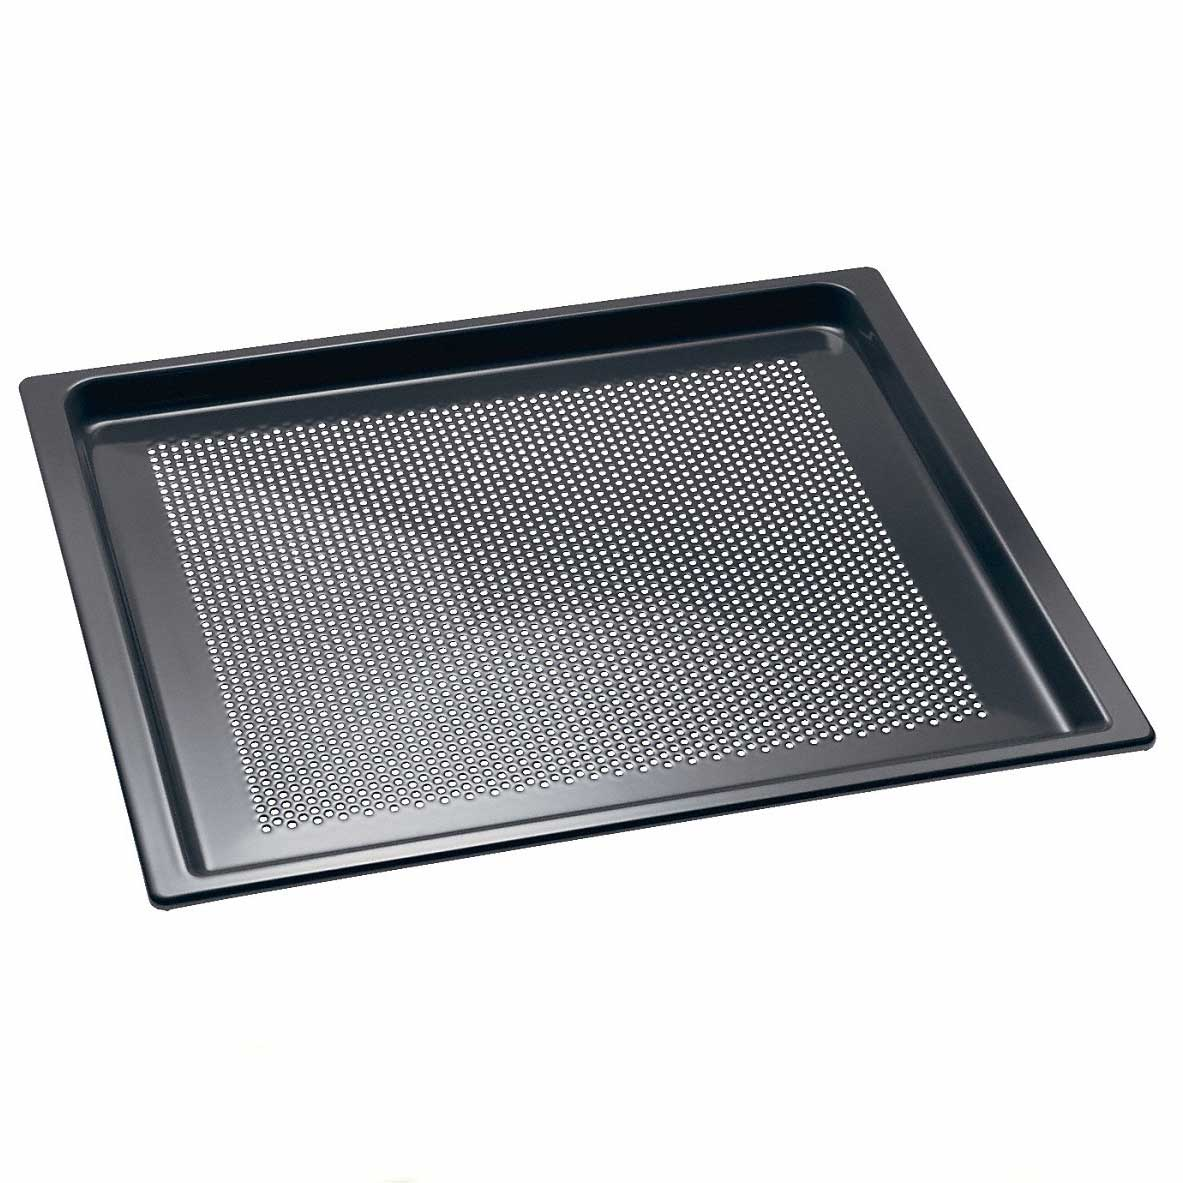 Miele HBBL 71 perforated baking tray